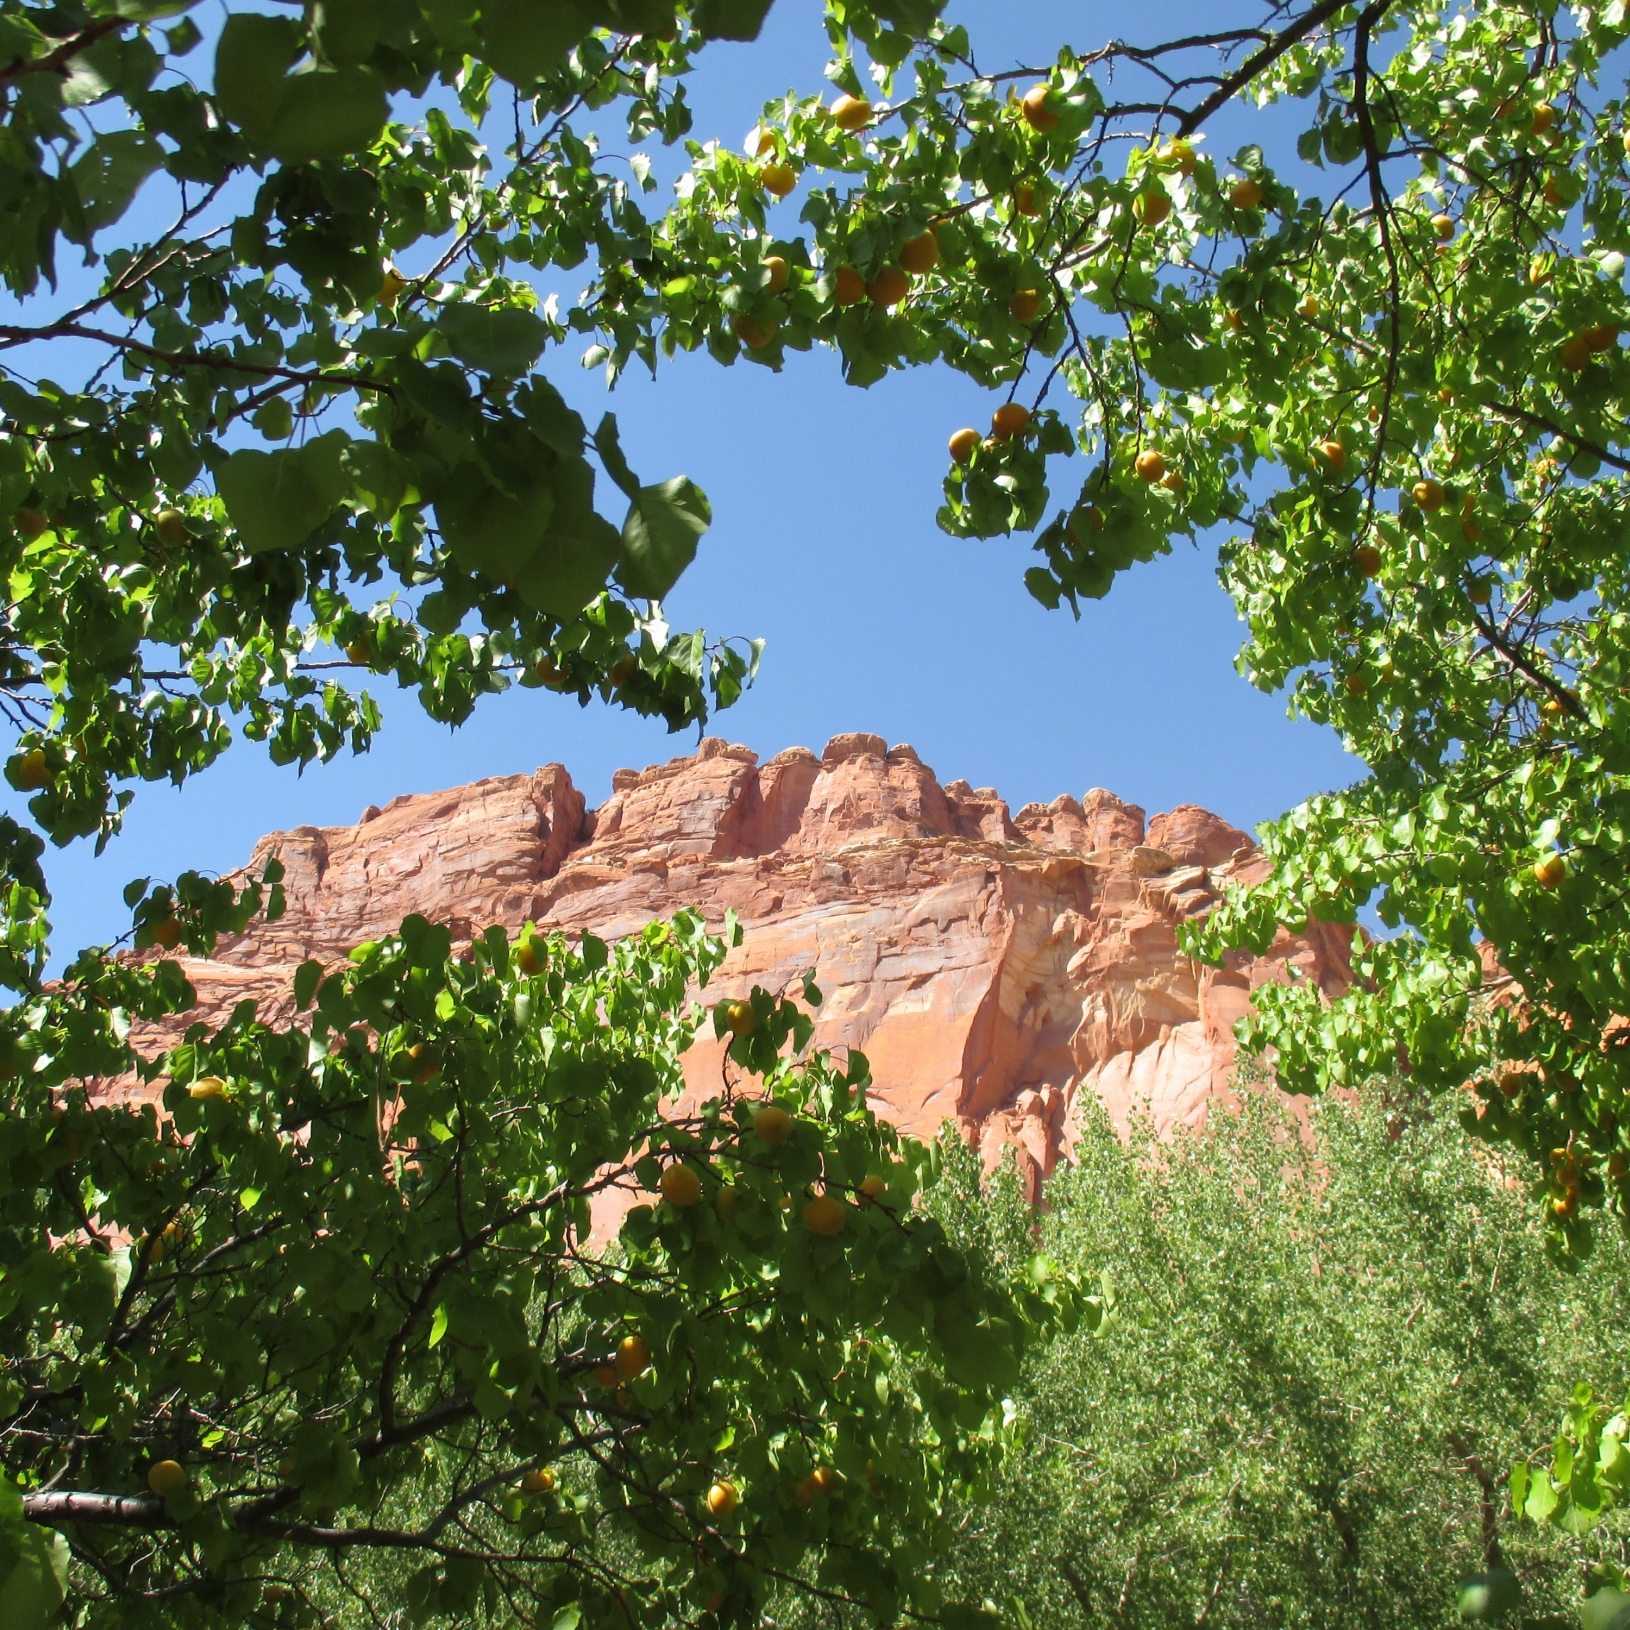 Boughs full of sun-ripened juicy apricots in the orchards at Capitol Reef National Park.